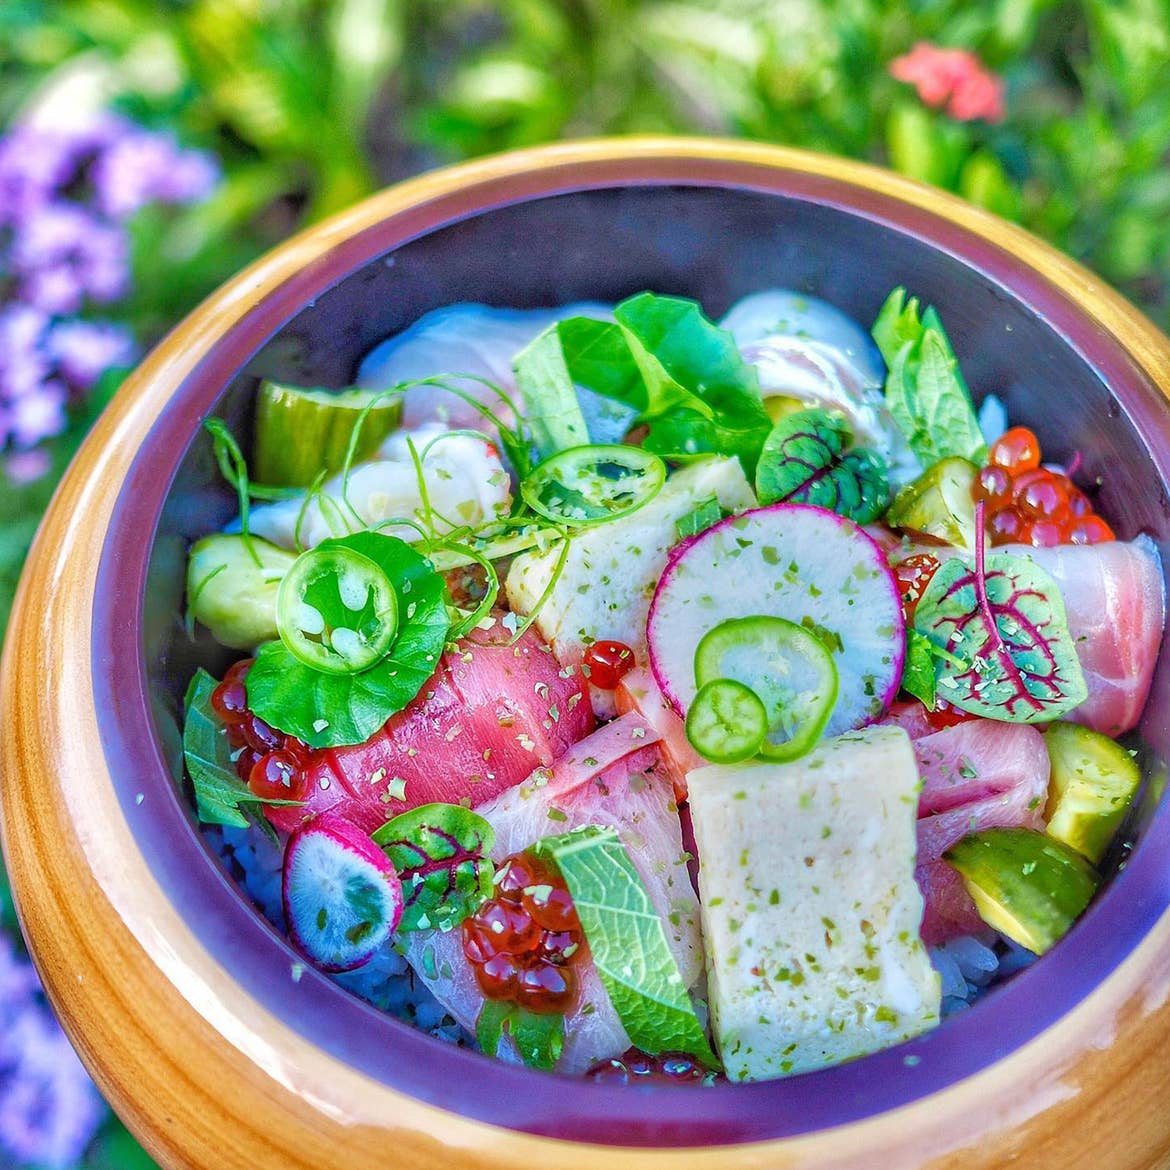 A colorful dish from Kabooki Sushi is held above some lush greenery.